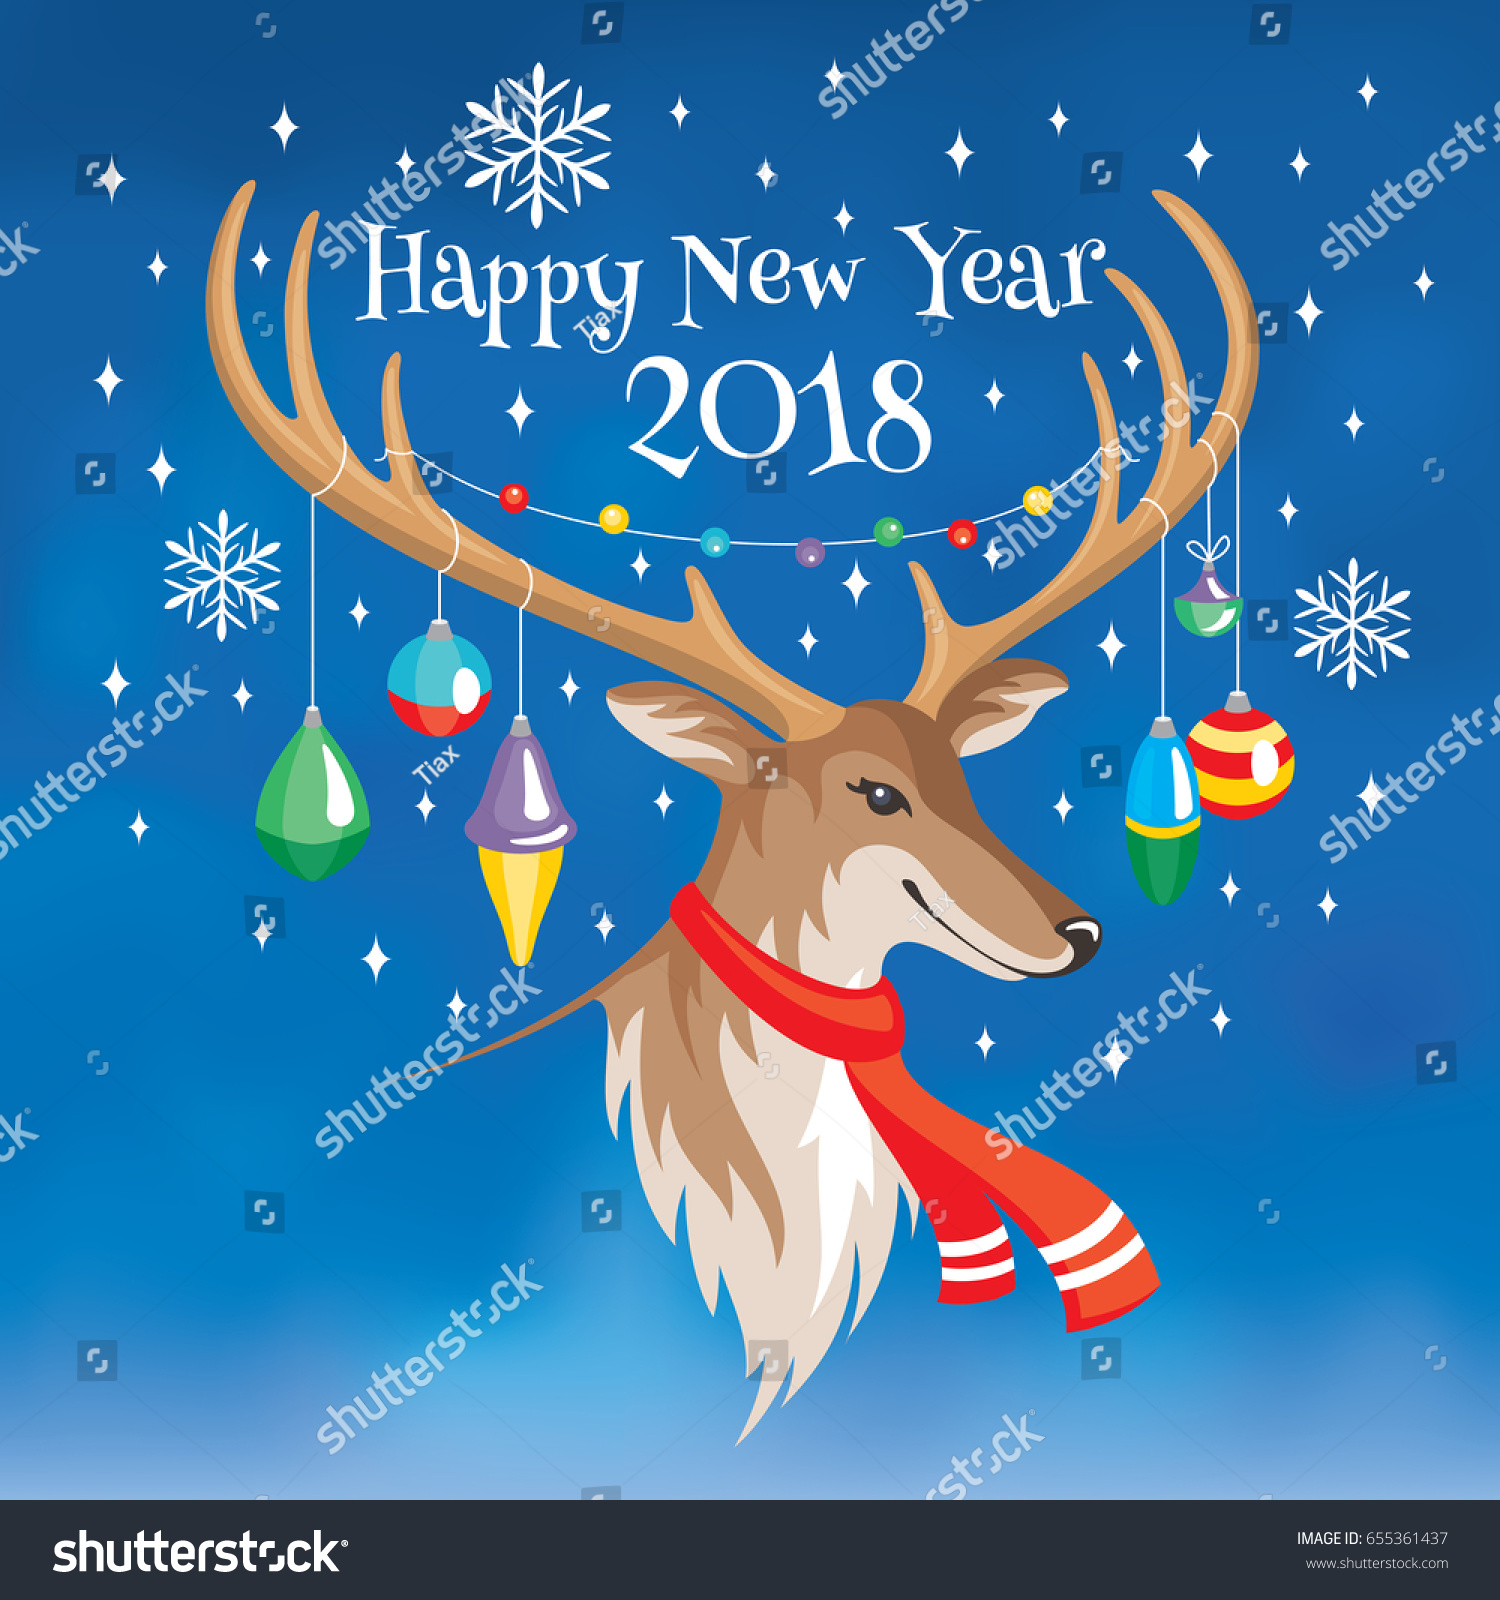 2018 happy new year greeting card stock vector 655361437